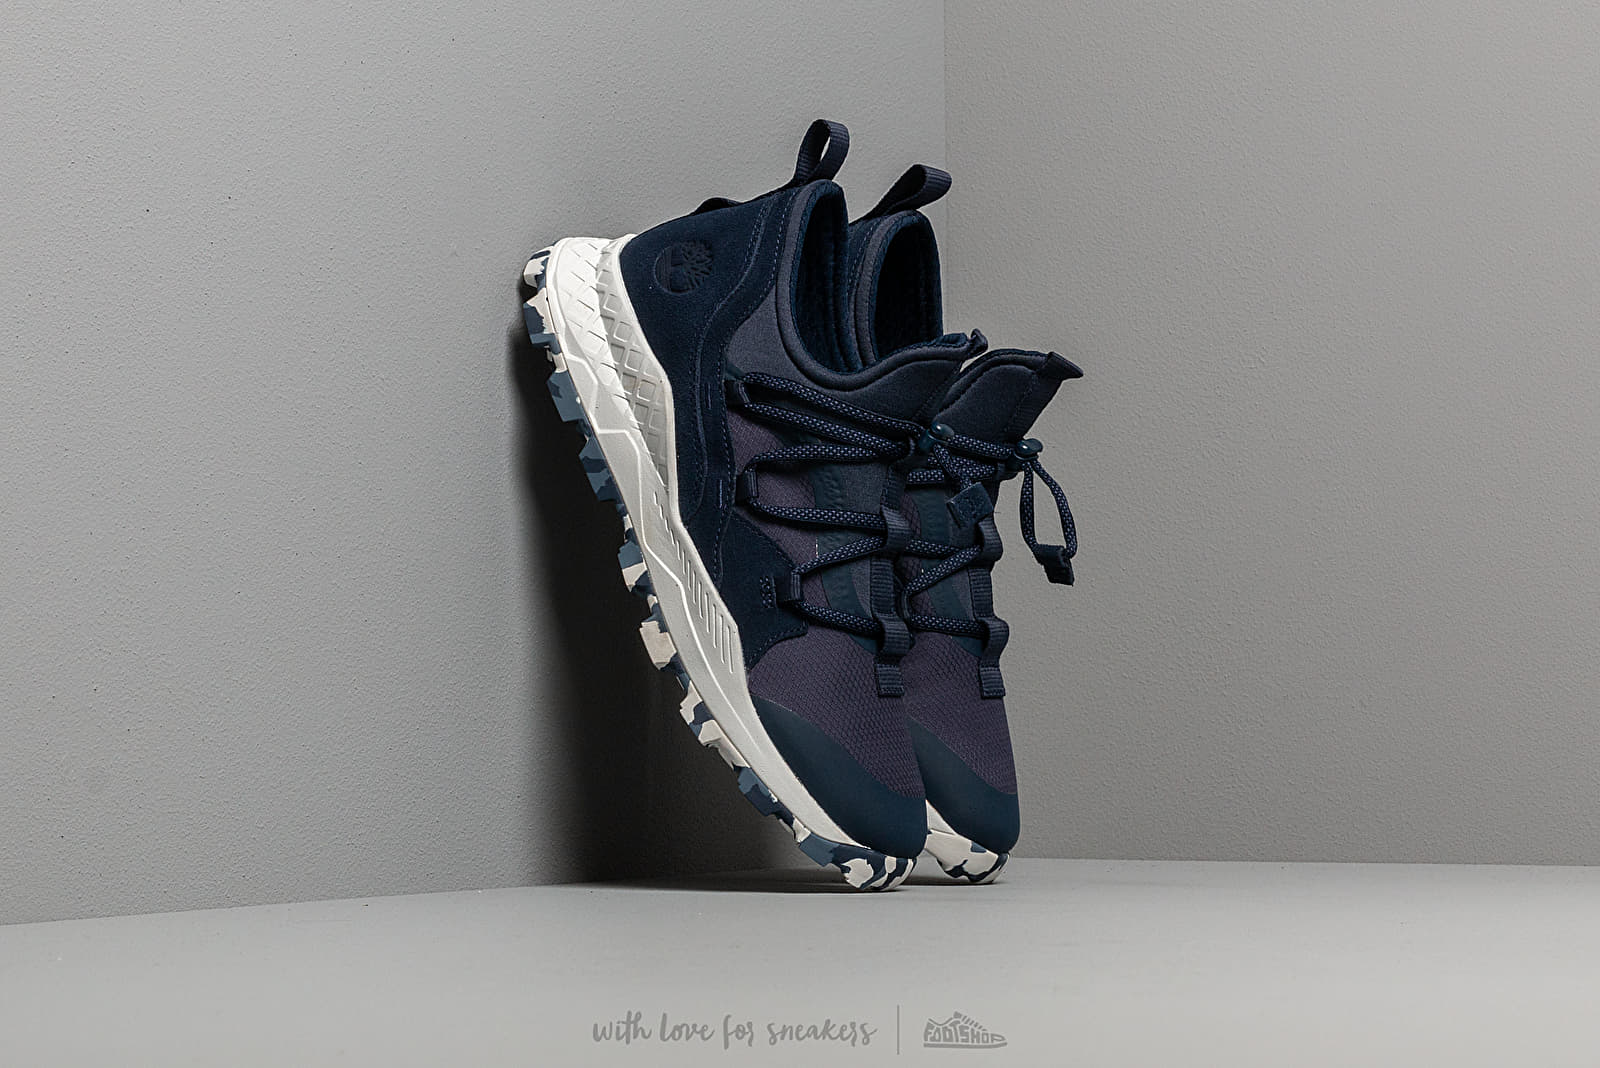 Timberland Brooklyn Leather/ Fabric Ox Navy Mesh za skvelú cenu 106 € kúpite na Footshop.sk